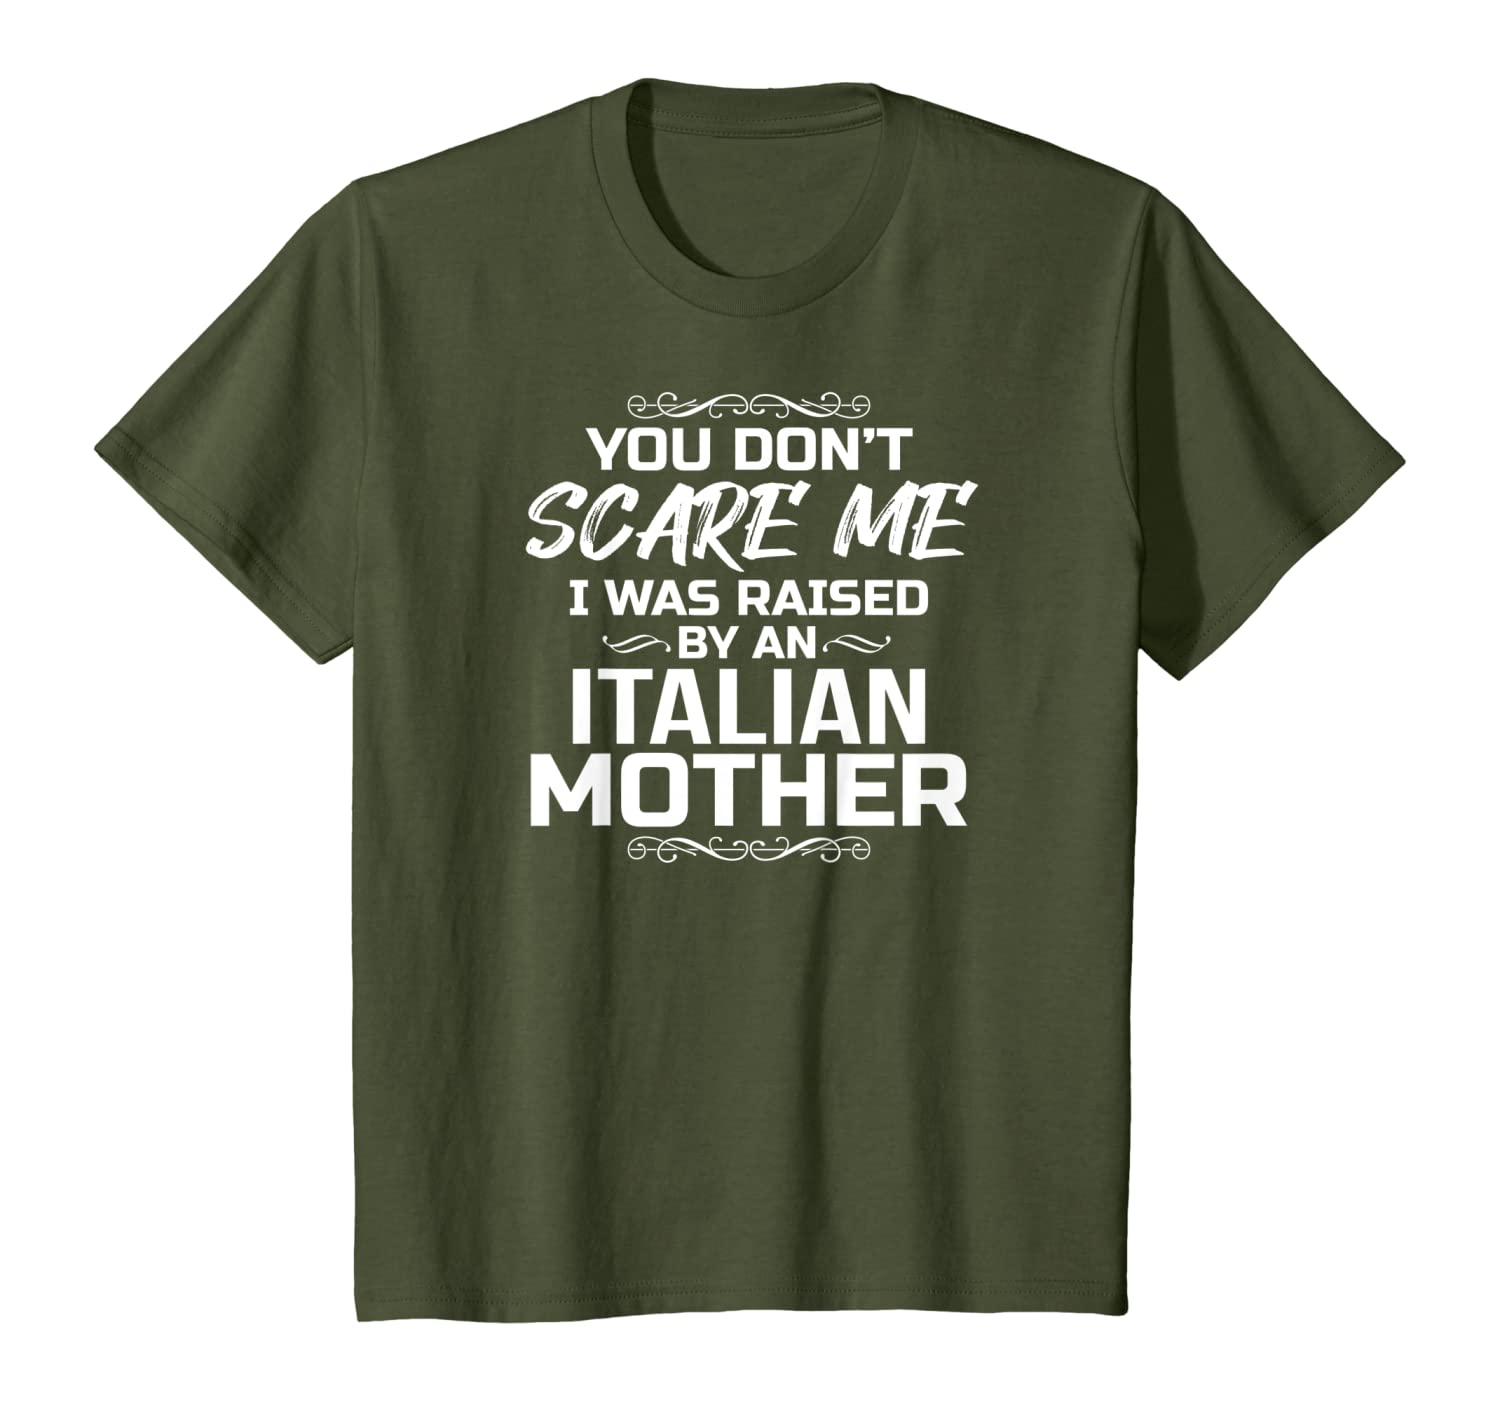 You Don't Scare Me I Was Raised By An Italian Mother Funny T-Shirt